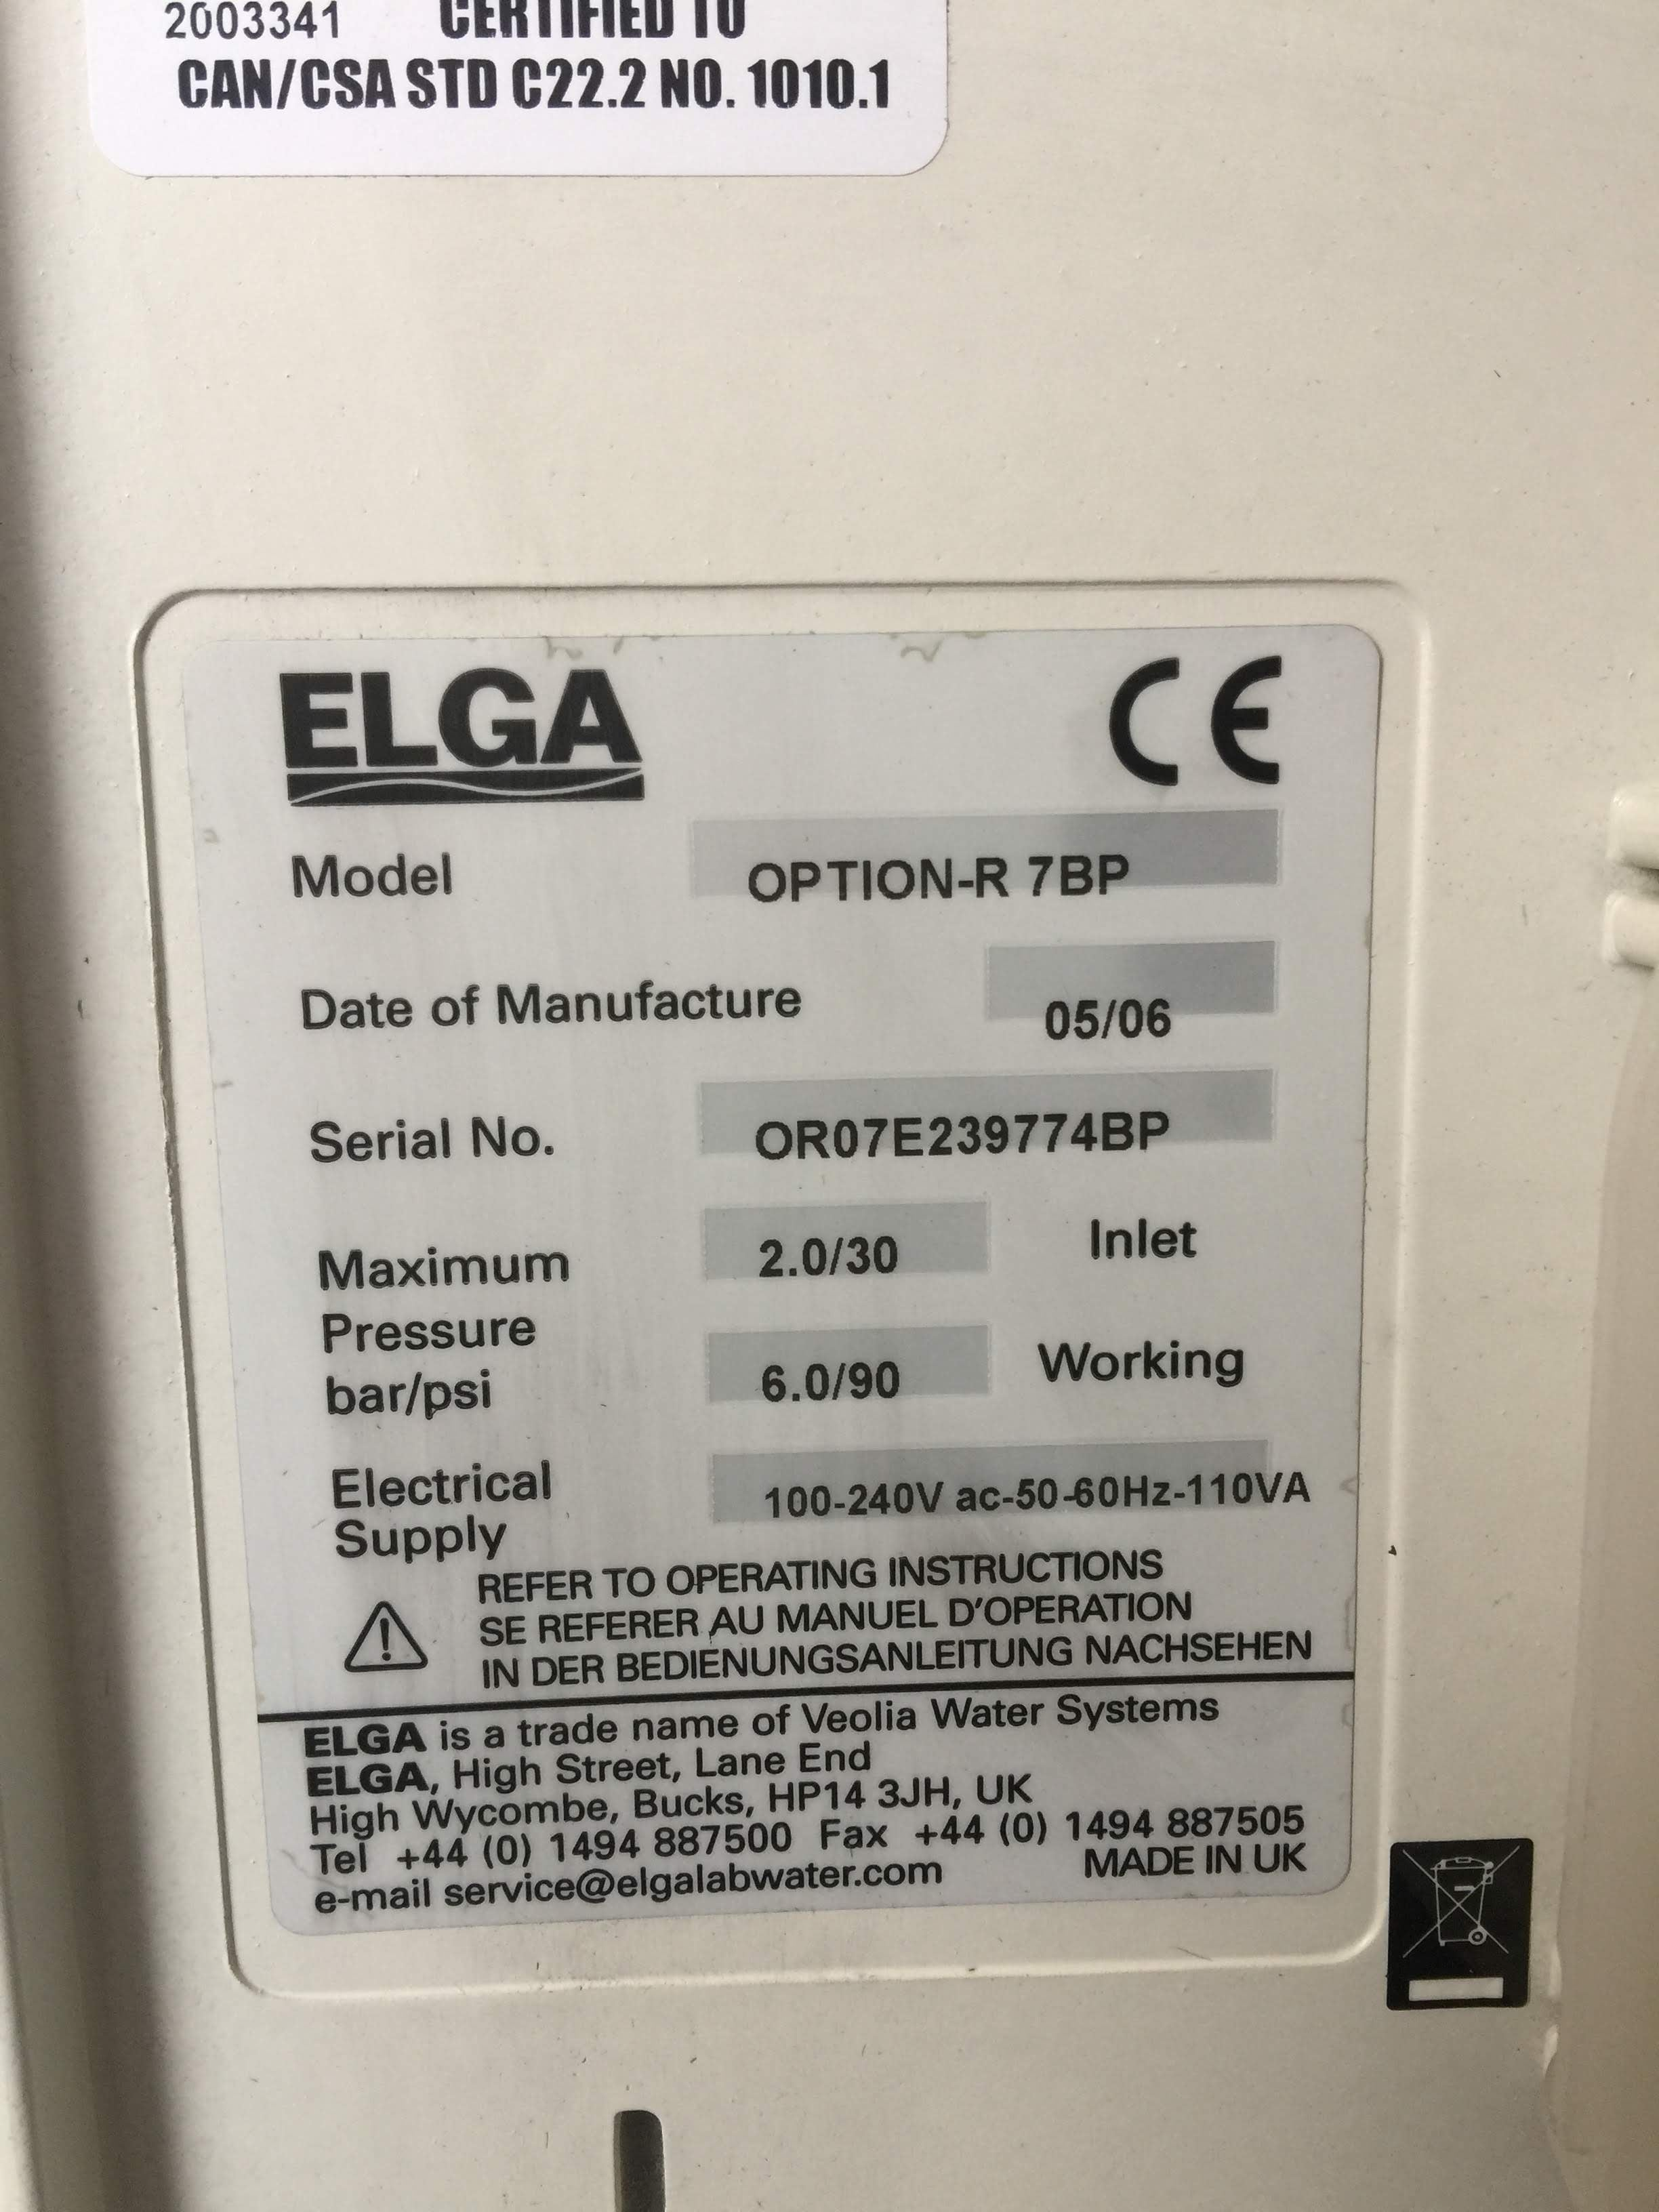 Elga Purelab Option-R 7BP Product Information